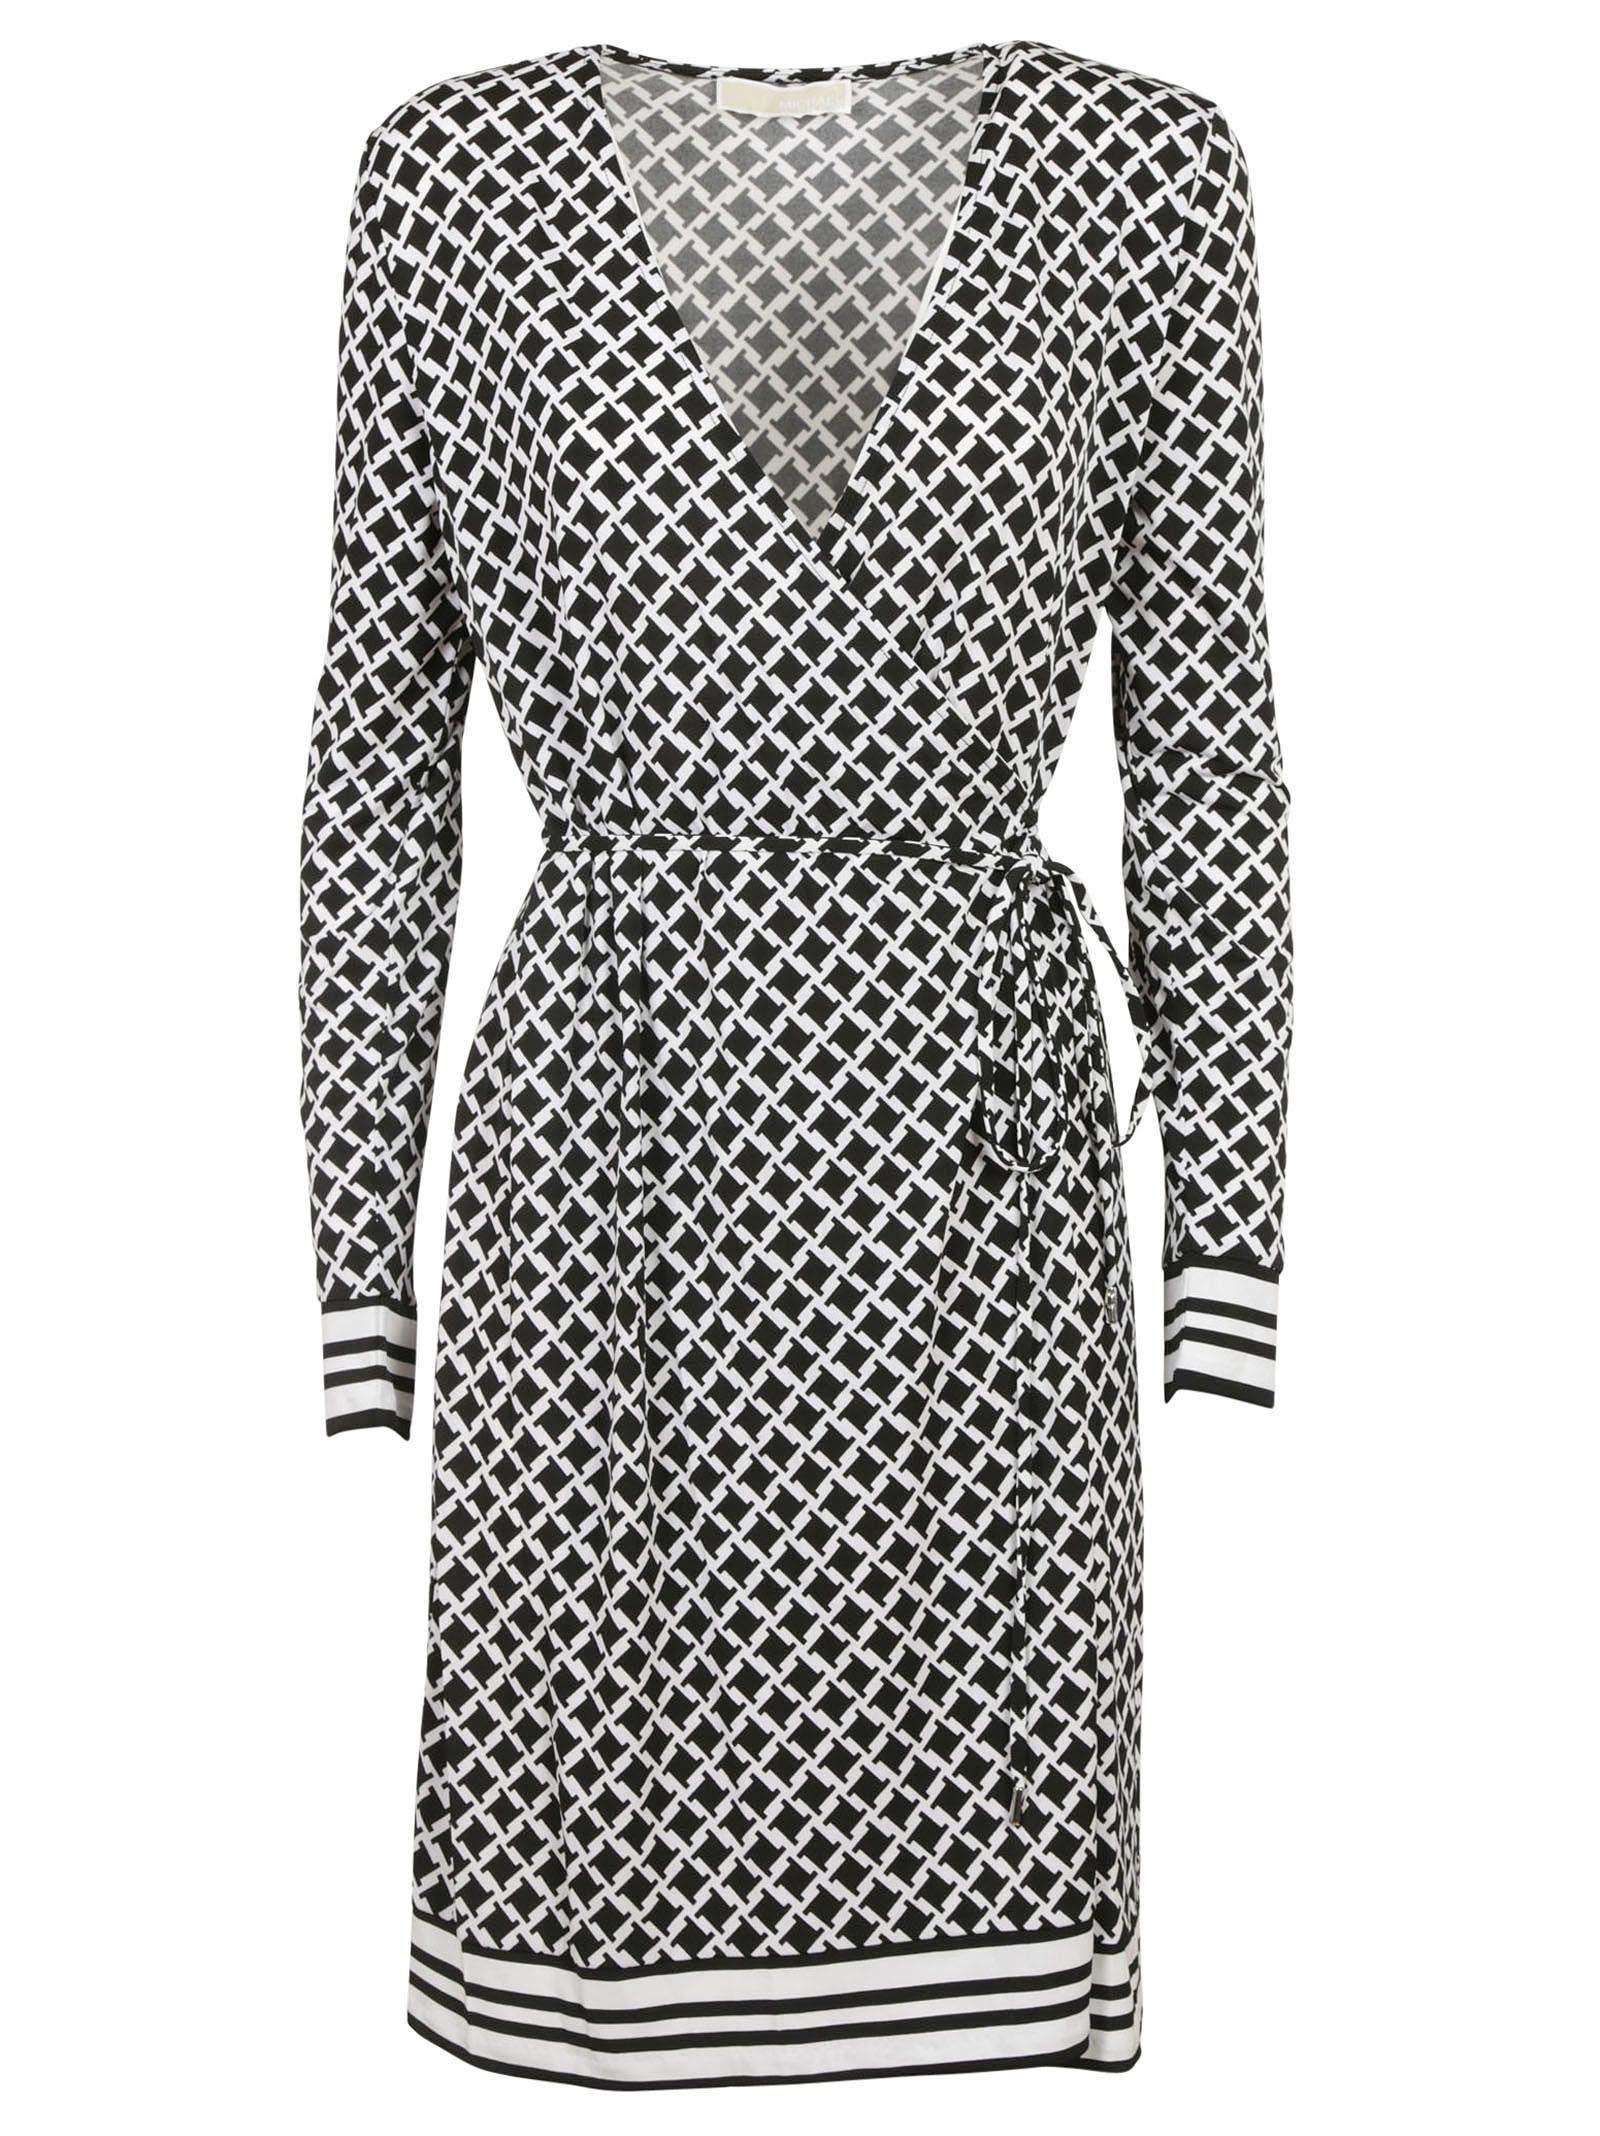 michael kors female 188972 black and white interlaced jersey dress